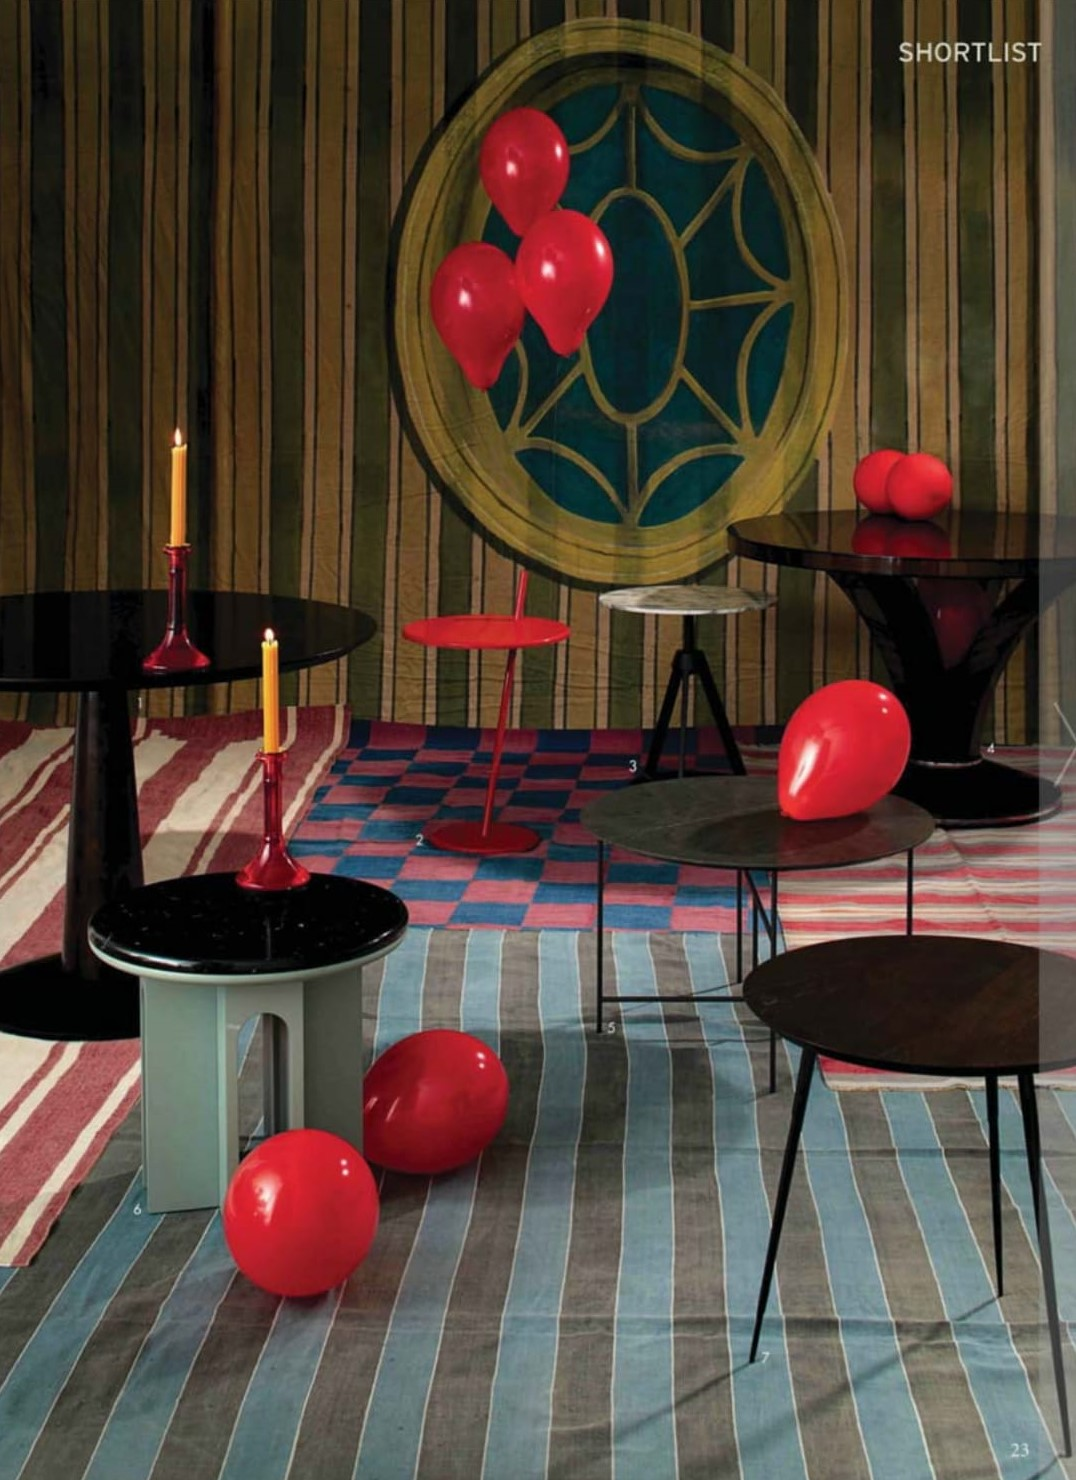 The World of Interiors goes full circle with Ligne Roset's ruby Good Evening table